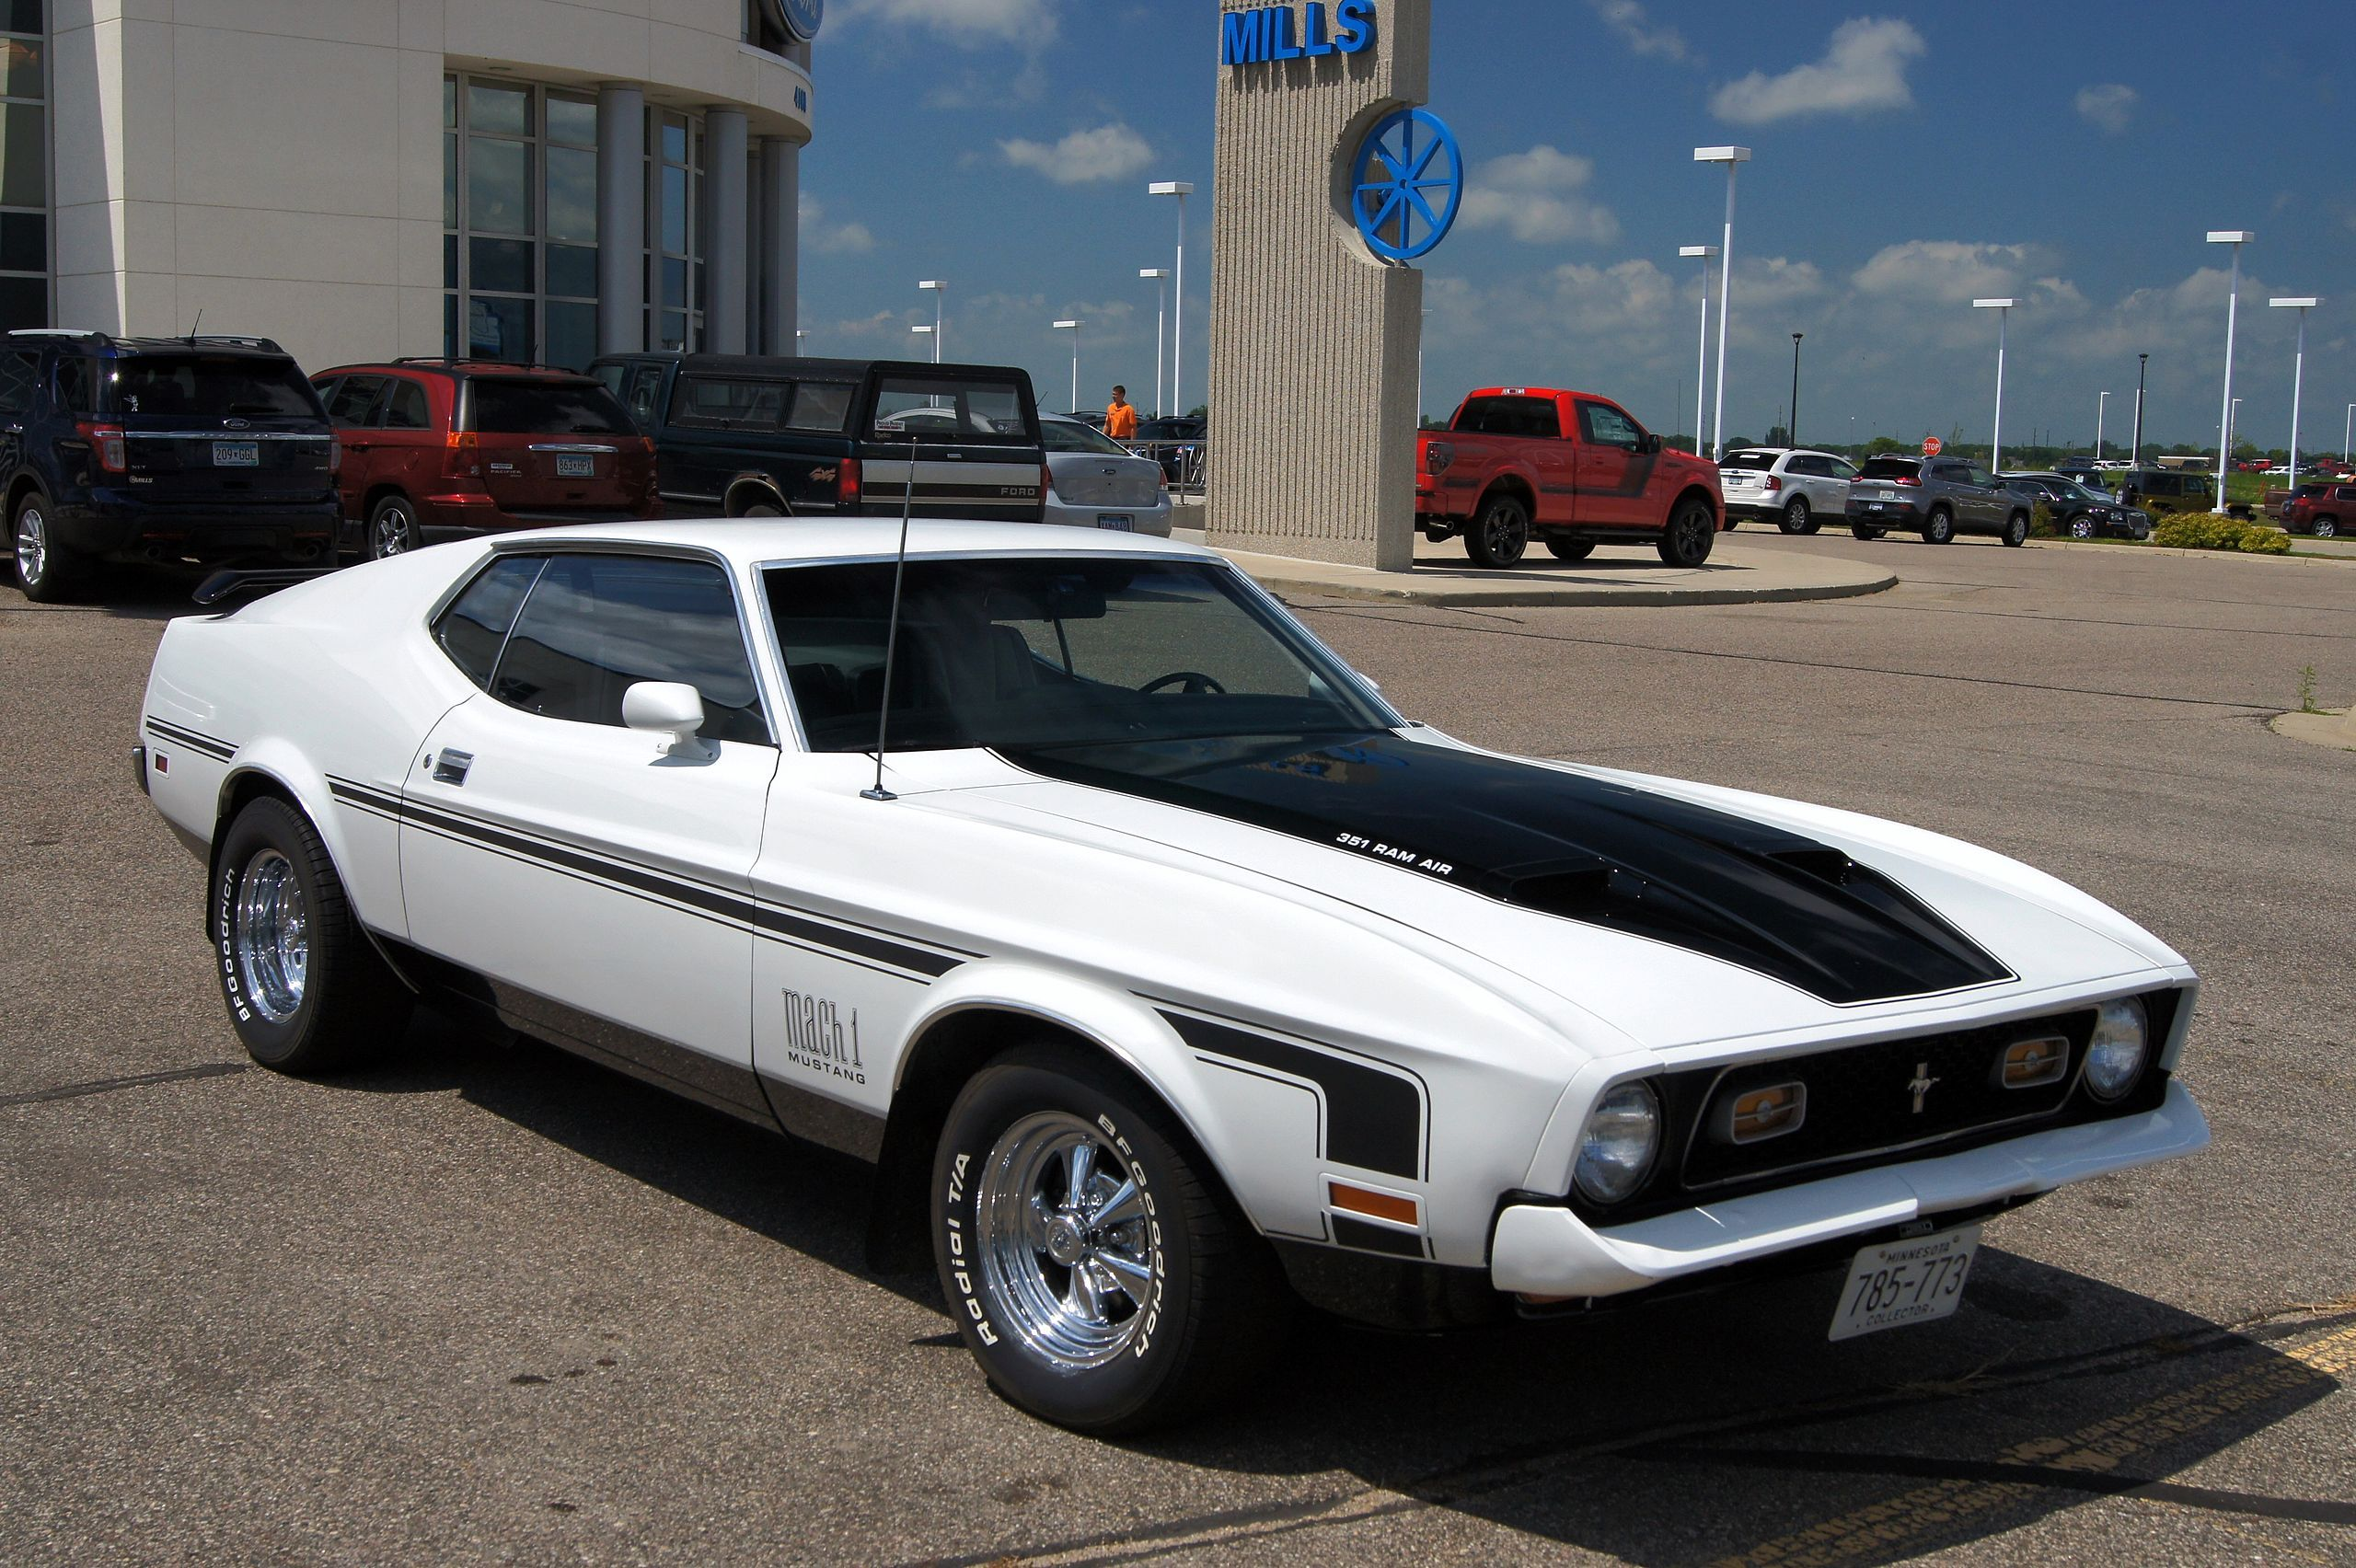 1971 Ford Mustang Mach 1 14564760649 Ford Mustang Mach 1